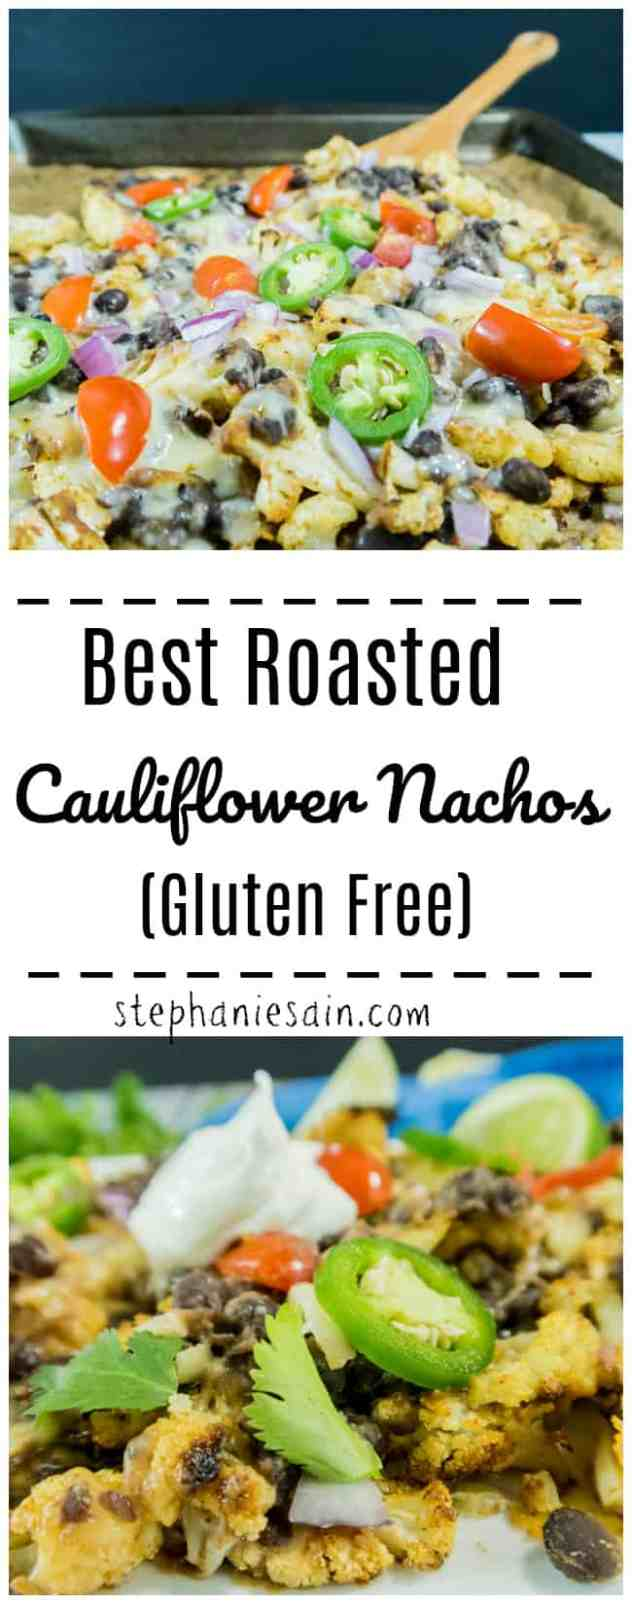 These Best Roasted Cauliflower Nachos are perfectly seasoned & then roasted to perfection. Then customizable with all your favorite nacho toppings. Gluten Free, Vegetarian, & the Nachos are Vegan depending on the toppings you choose.